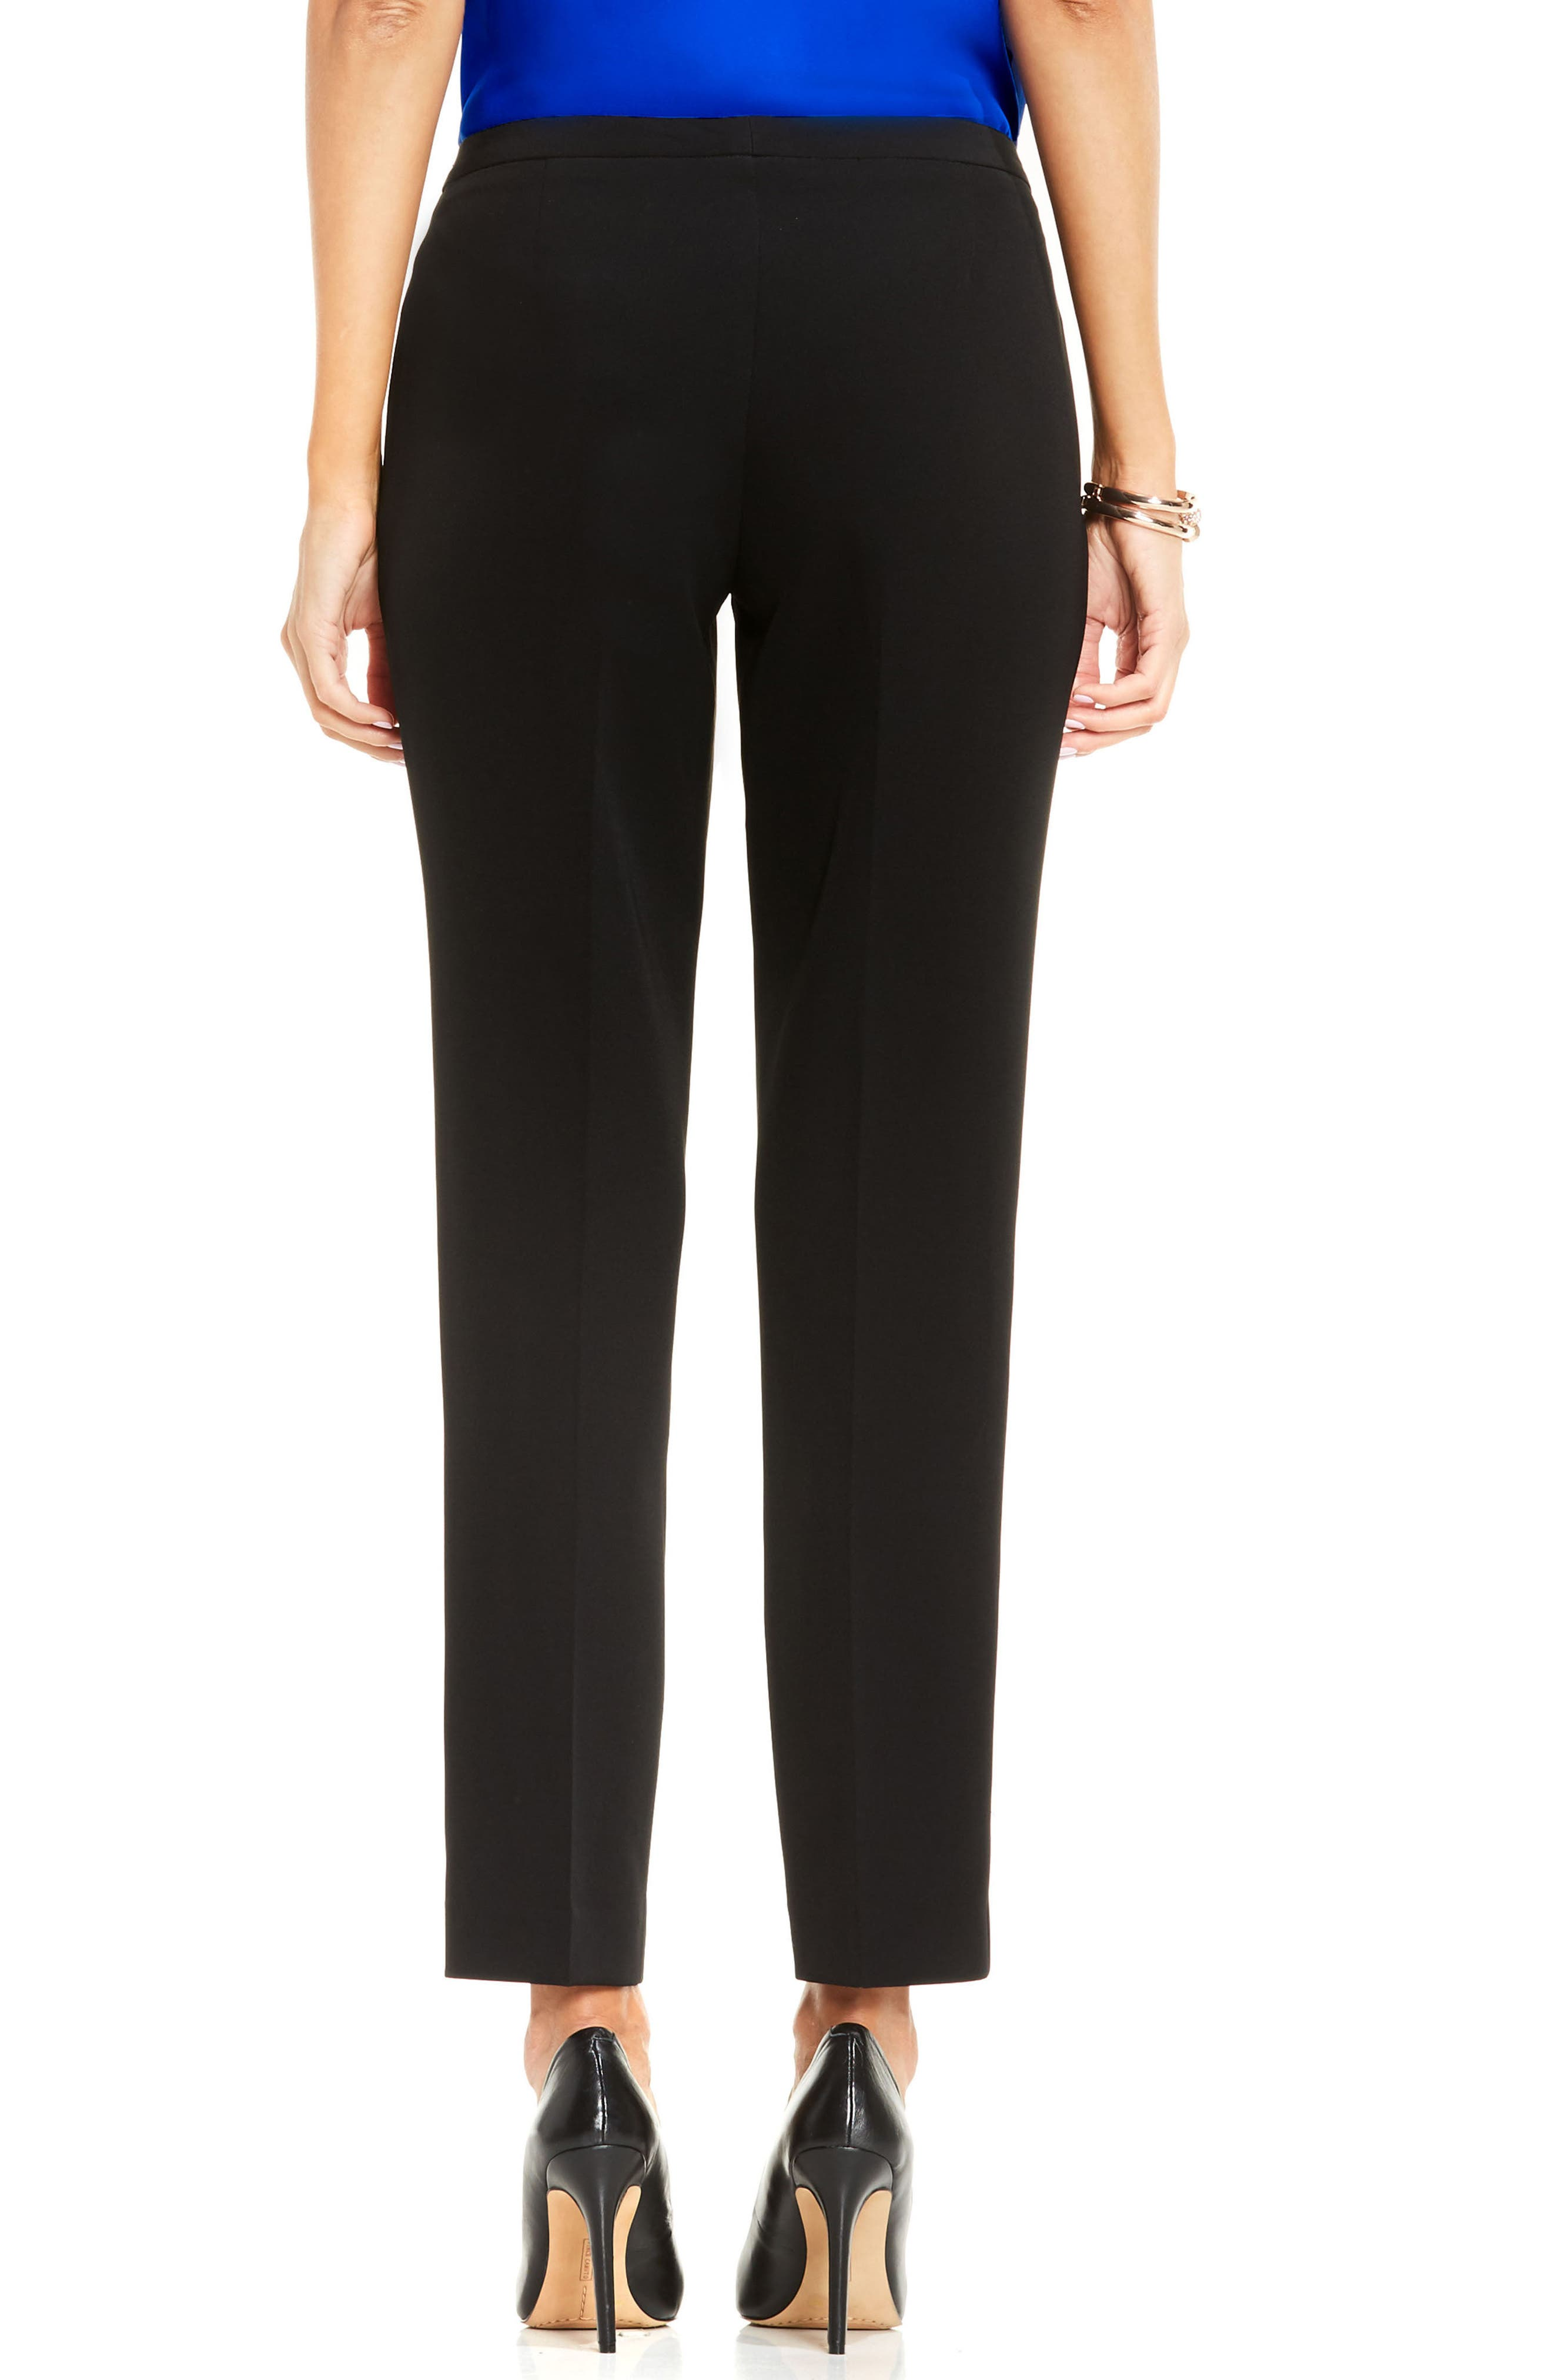 Alternate Image 2  - Vince Camuto Stretch Twill Ankle Pants (Regular & Petite)